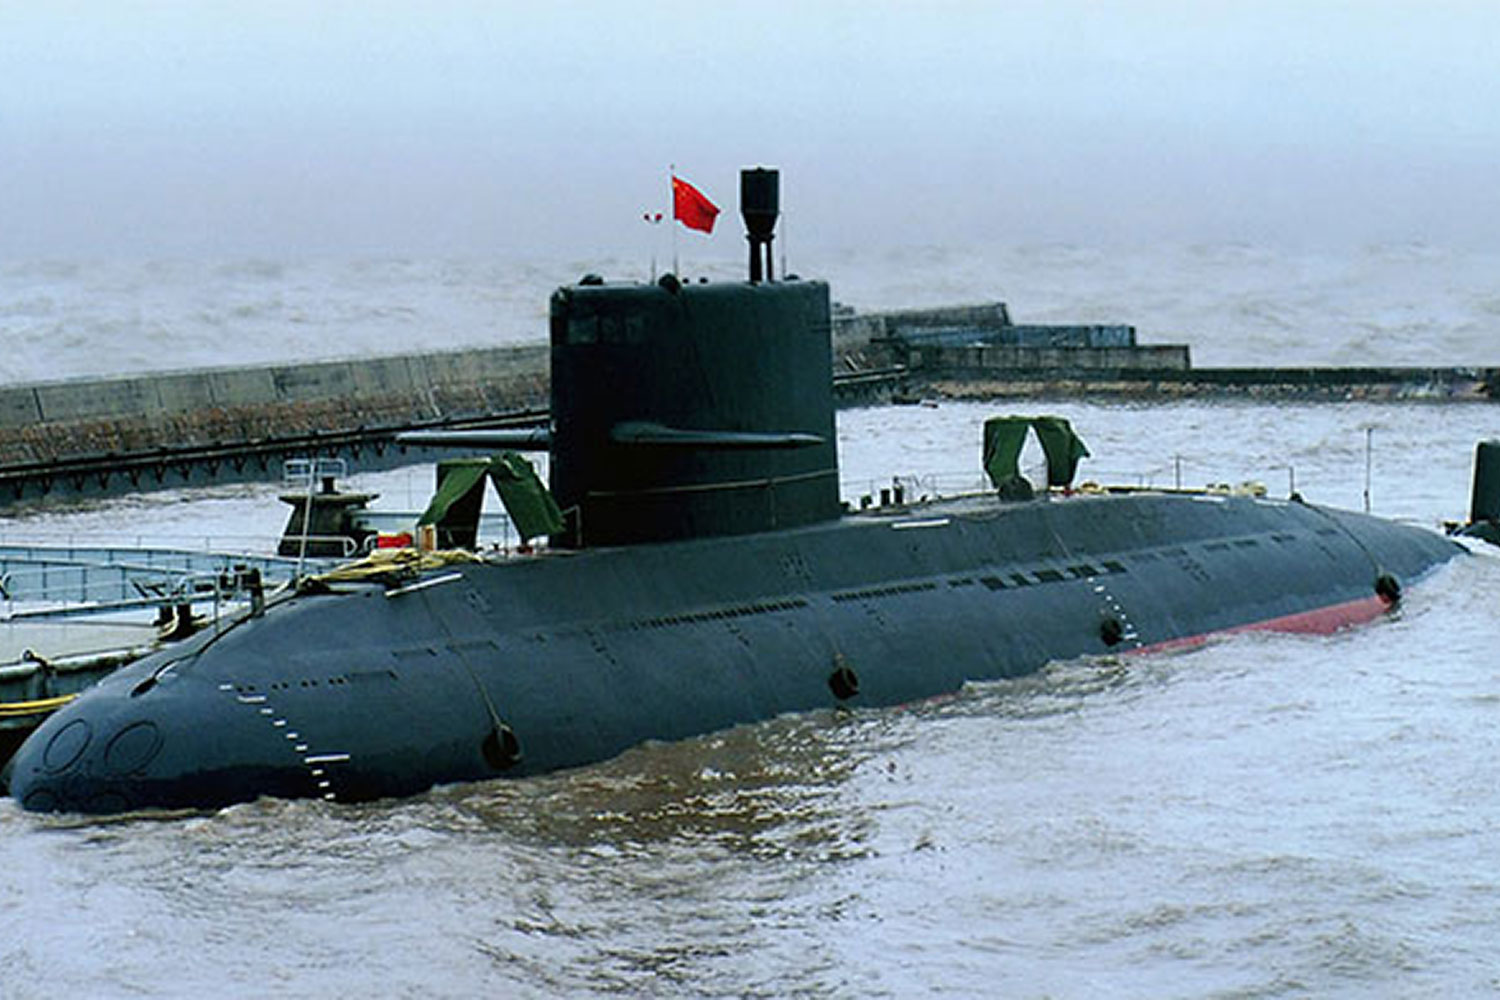 The Chinese-made Yuan-class sub has an air independent propulsion system that allows it to stay submerged for up to three weeks. (Photo from YouTube)